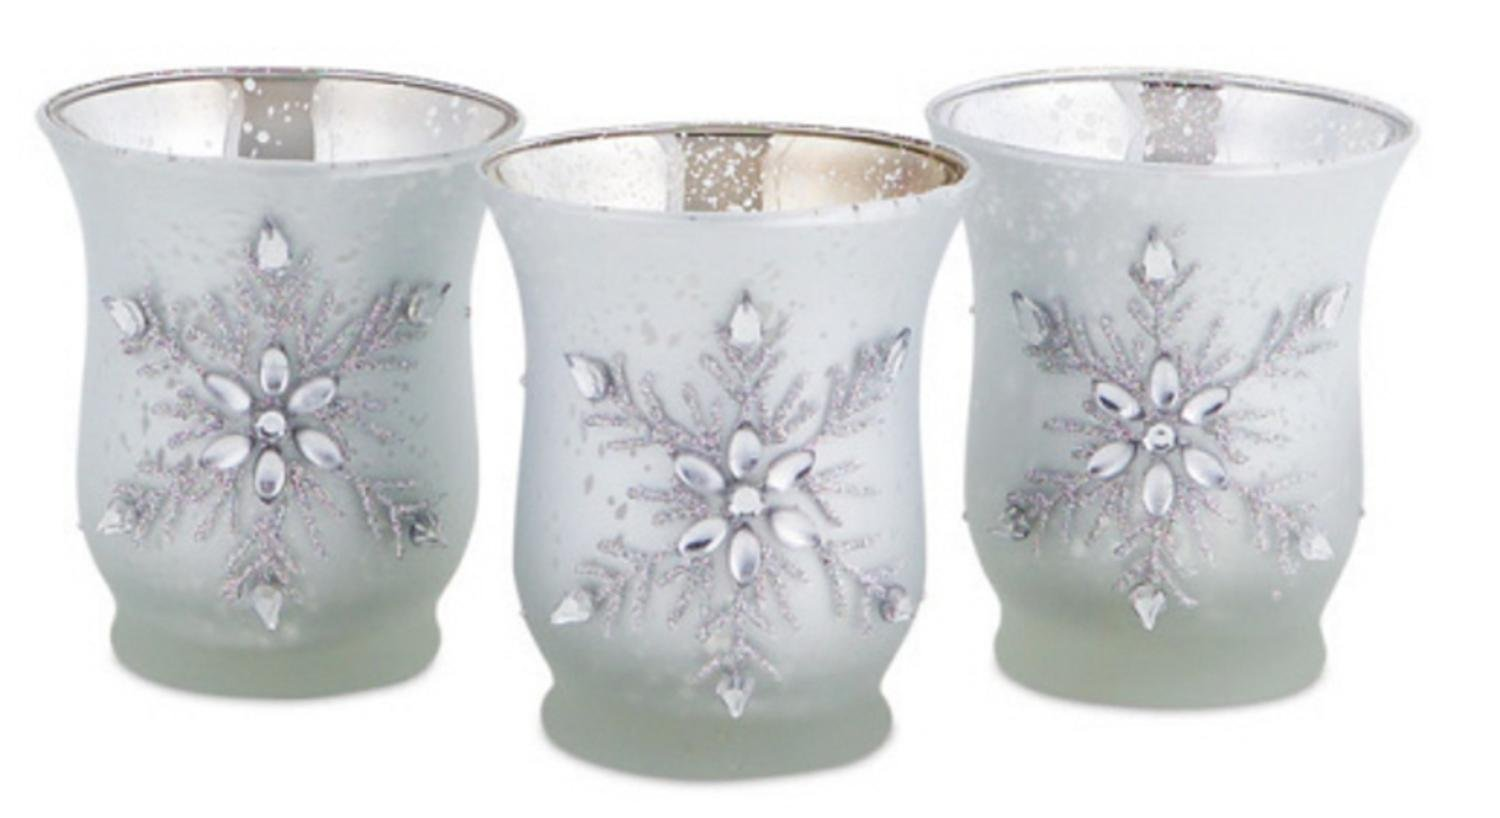 18 Matte Silver Glass Jeweled Snowflake Christmas Votive Candle Holders 3.5'' by Melrose (Image #1)